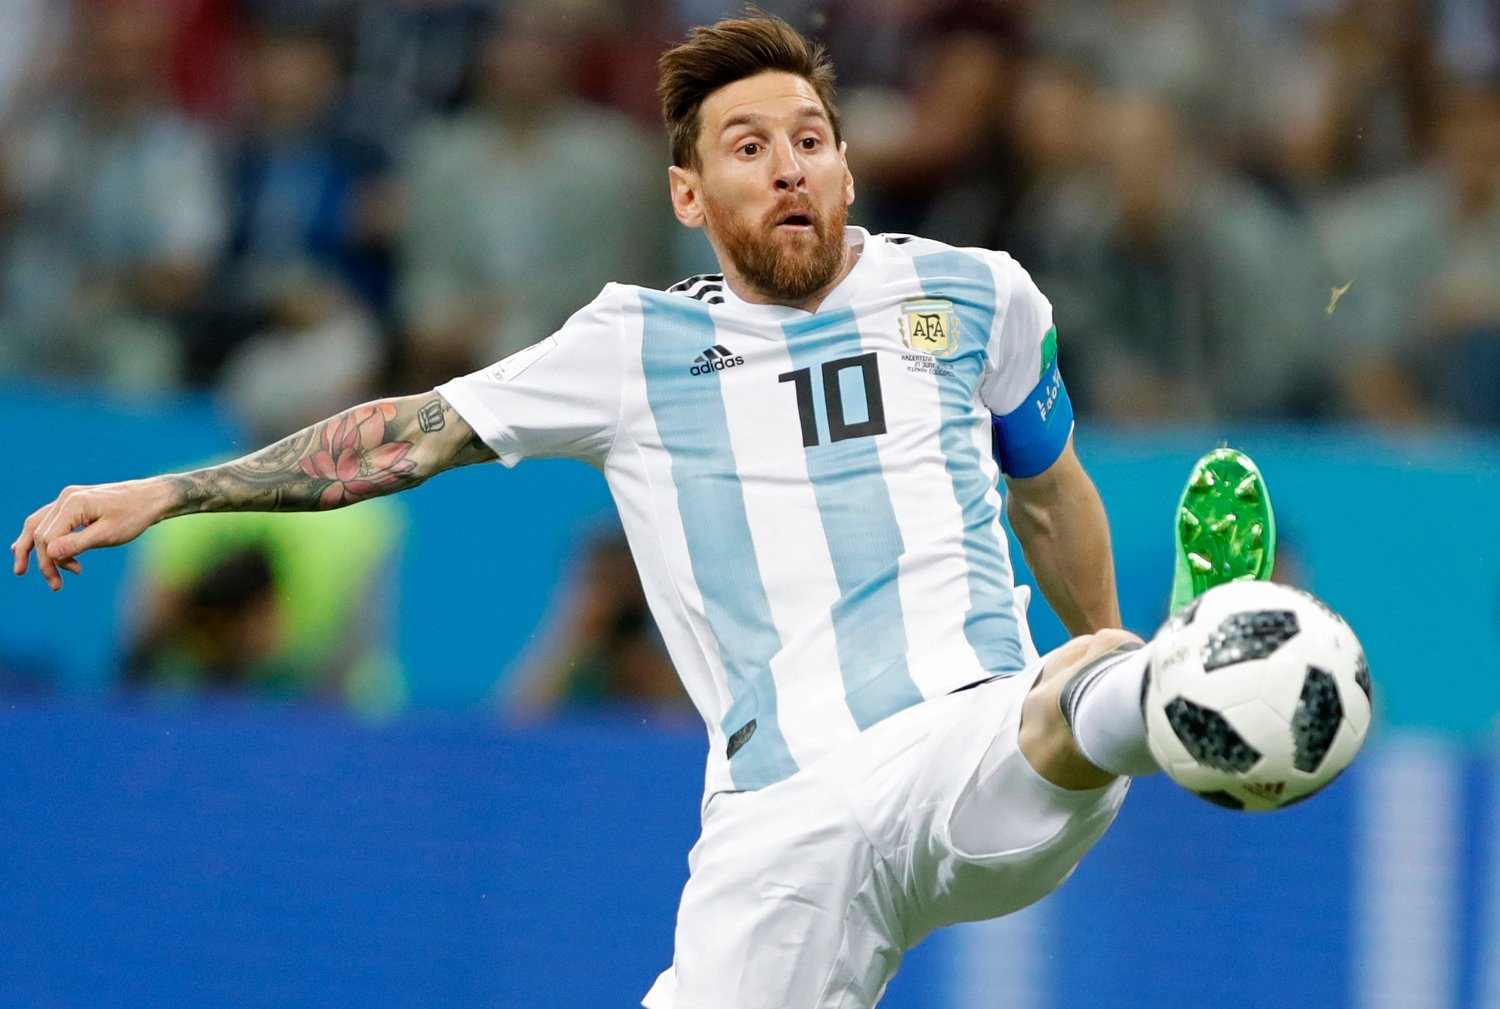 FILE - In this June 21, 2018 file photo Argentina's Lionel Messi reaches for the ball during the group D match between Argentina and Croatia at the 2018 soccer World Cup in Nizhny Novgorod Stadium in Nizhny Novgorod, Russia. Five-time winner Lionel Messi along with Cristiano Ronaldo and Virgil van Dijk are the three finalists for the FIFA best player award.